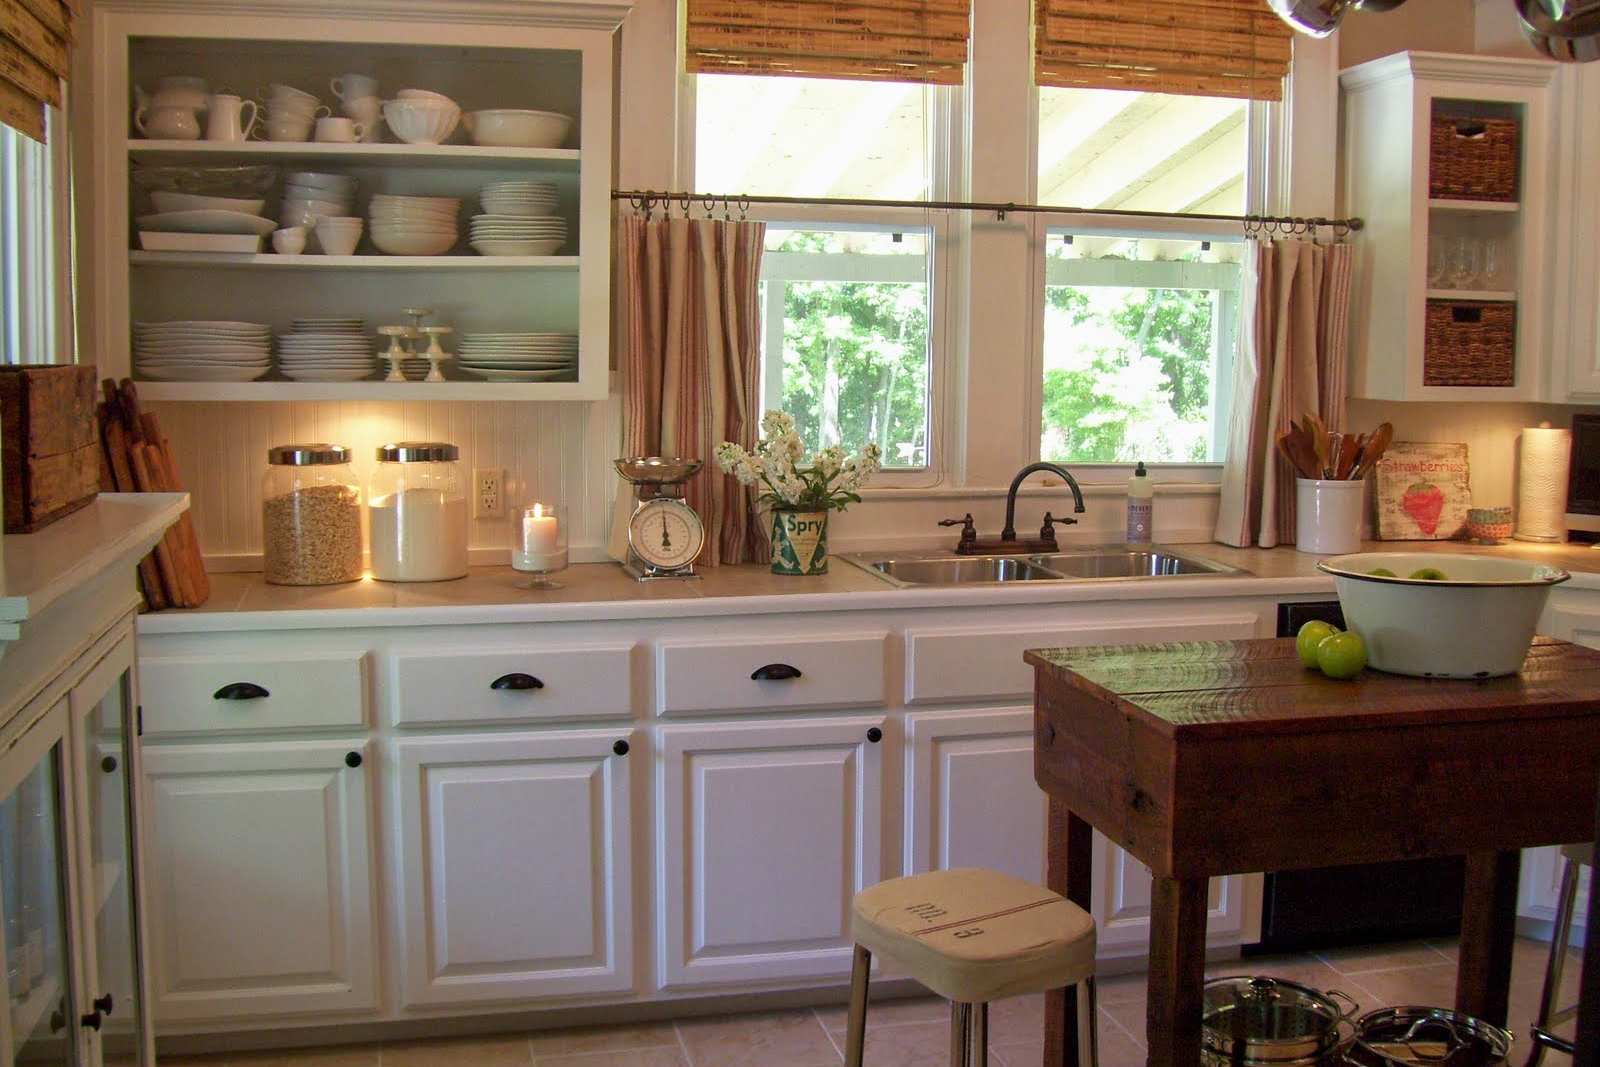 beautiful Remodeled Kitchens On A Budget #4: HouseLogic